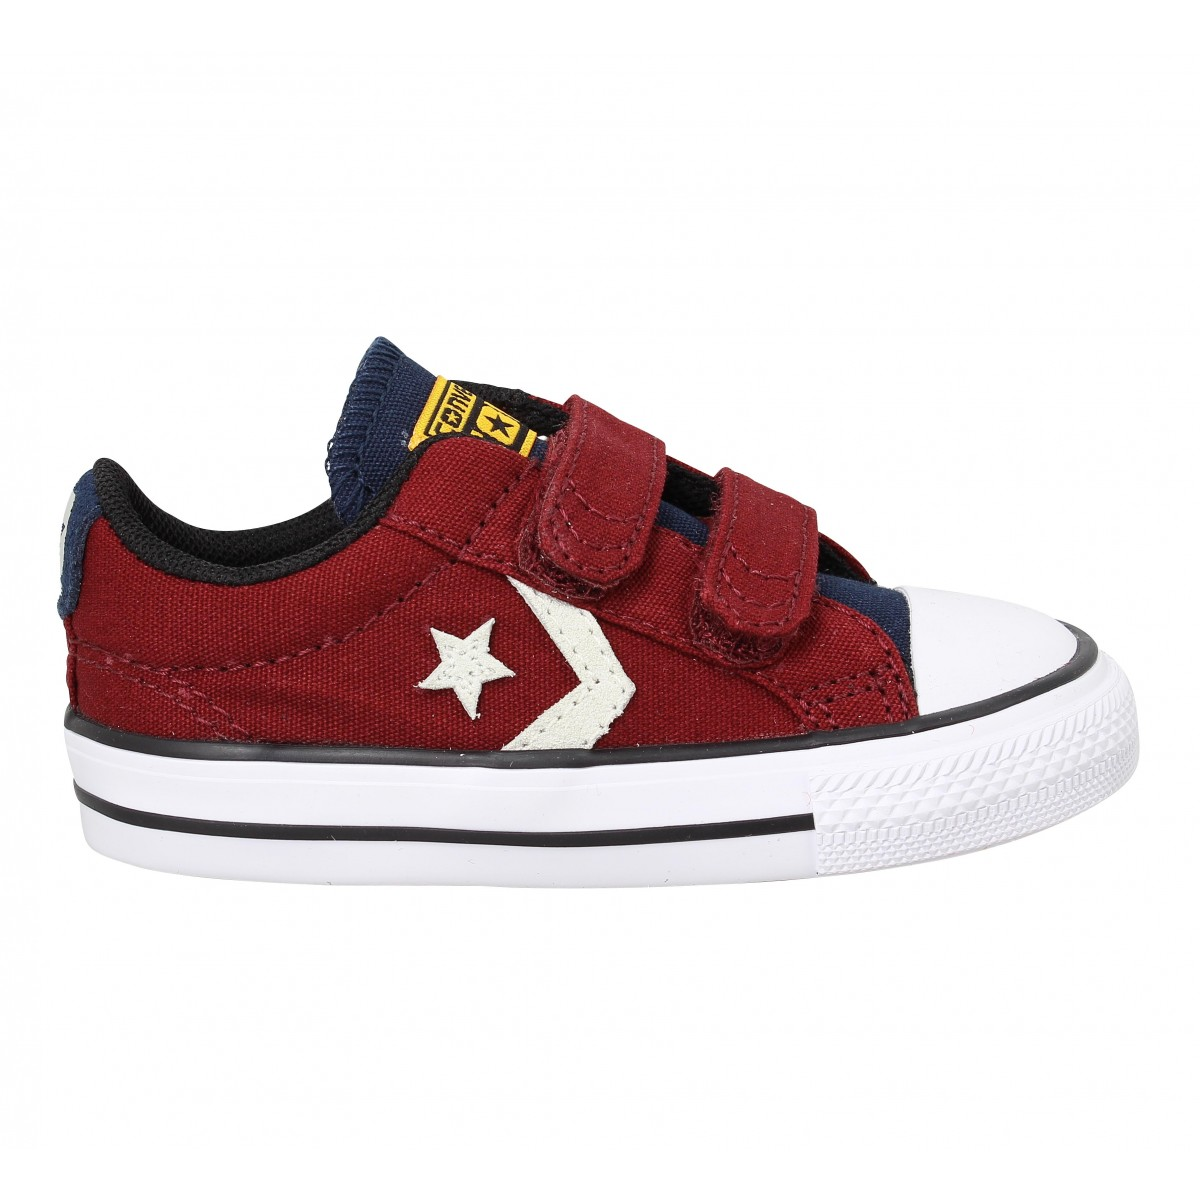 ab5175aa3b638 ... real converse star player 2v toile enfant red enfants fanny chaussures  db7ec 7796e